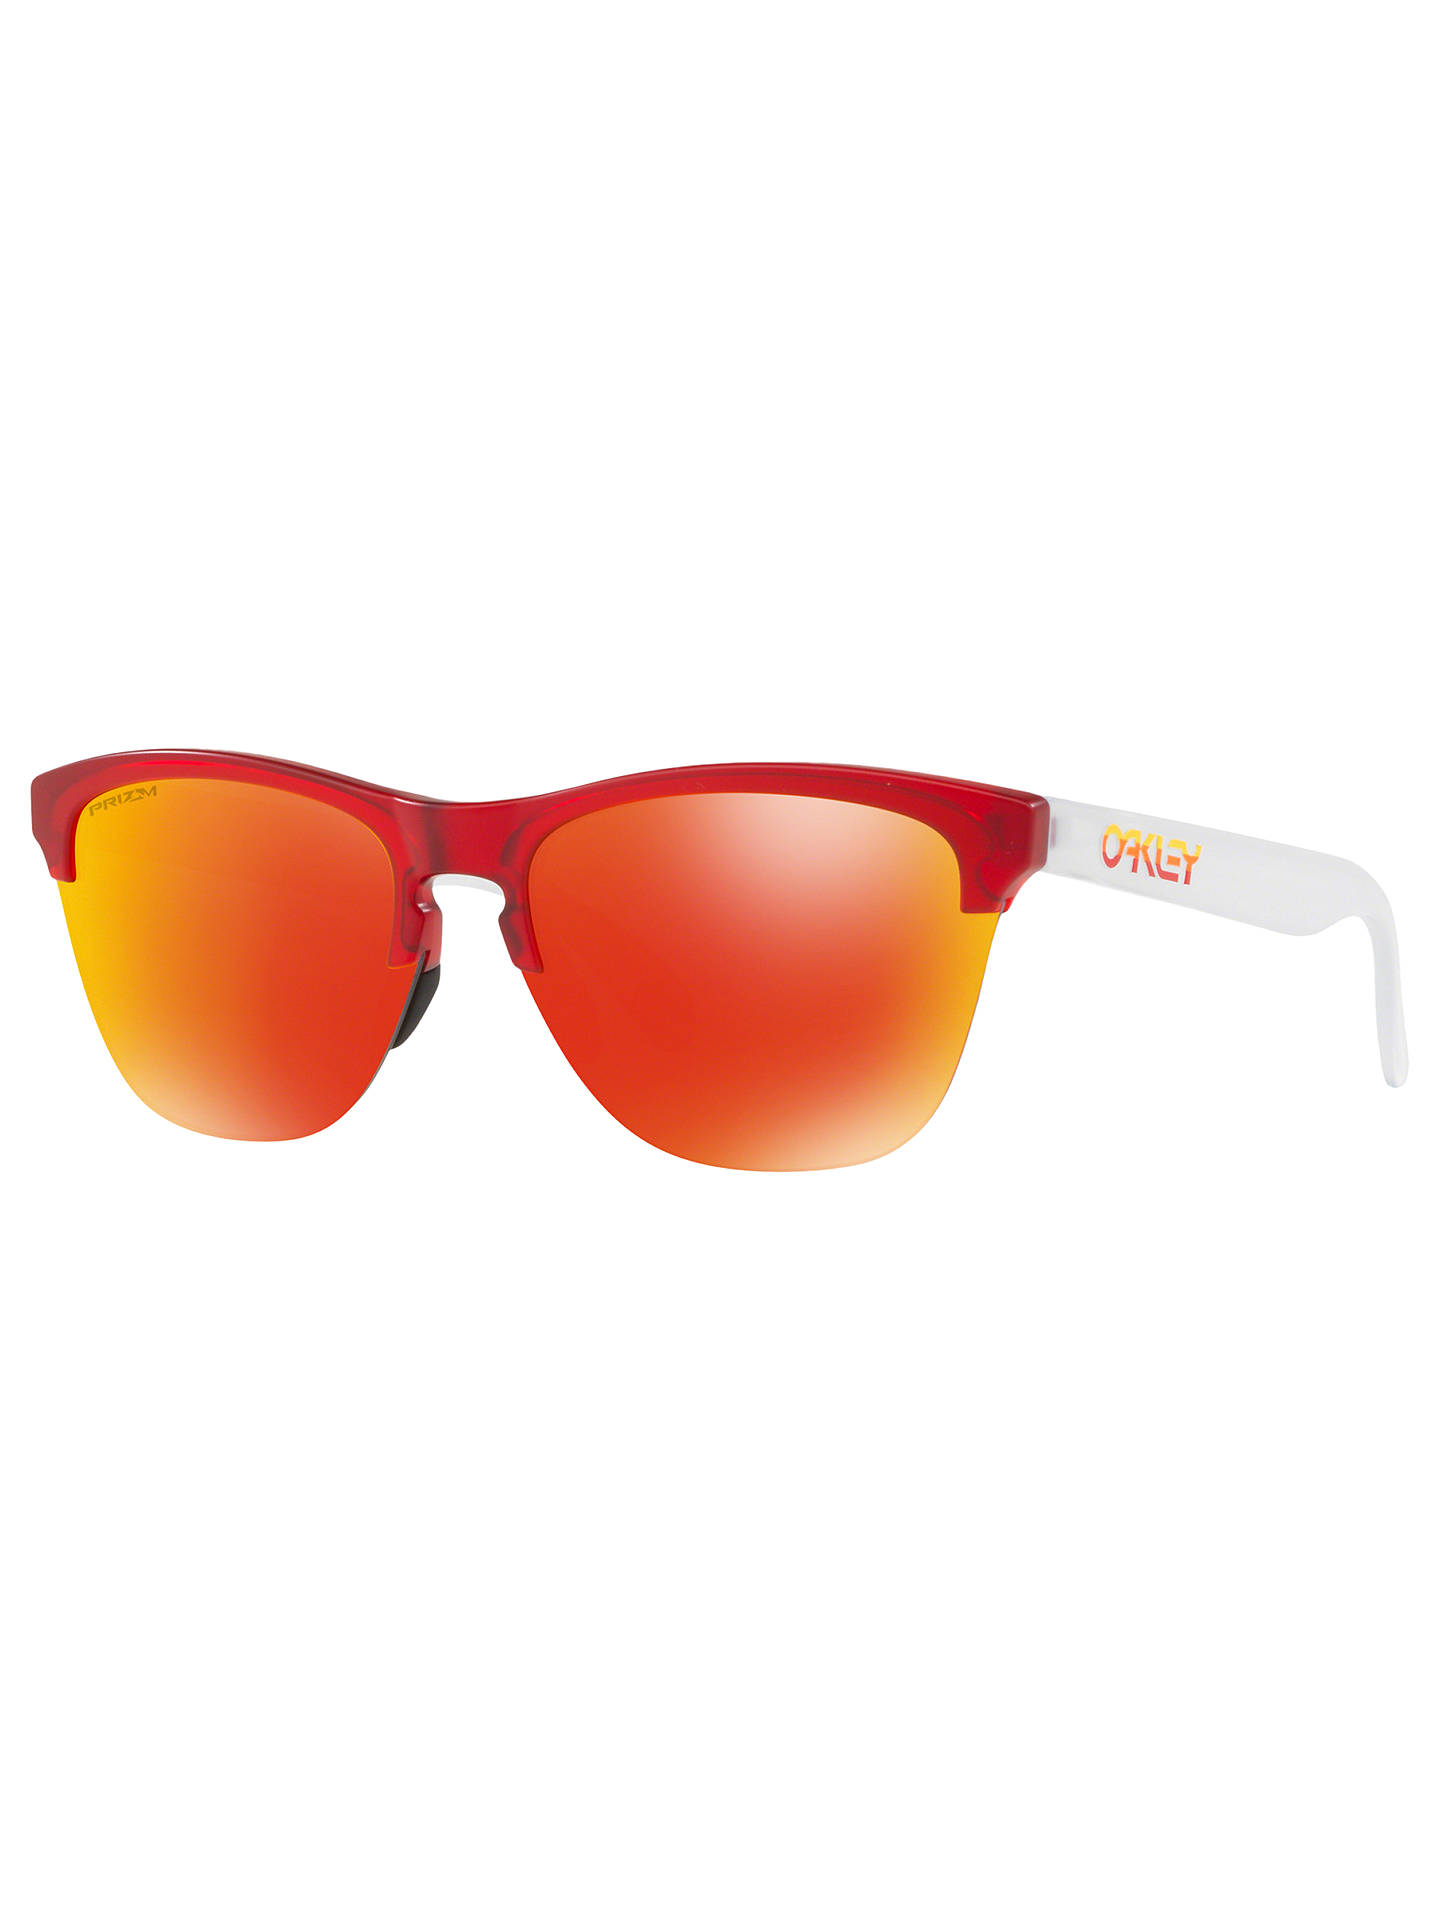 27bb0c930a2 Oakley OO9374 Men s Frogskins Lite Round Sunglasses at John Lewis ...